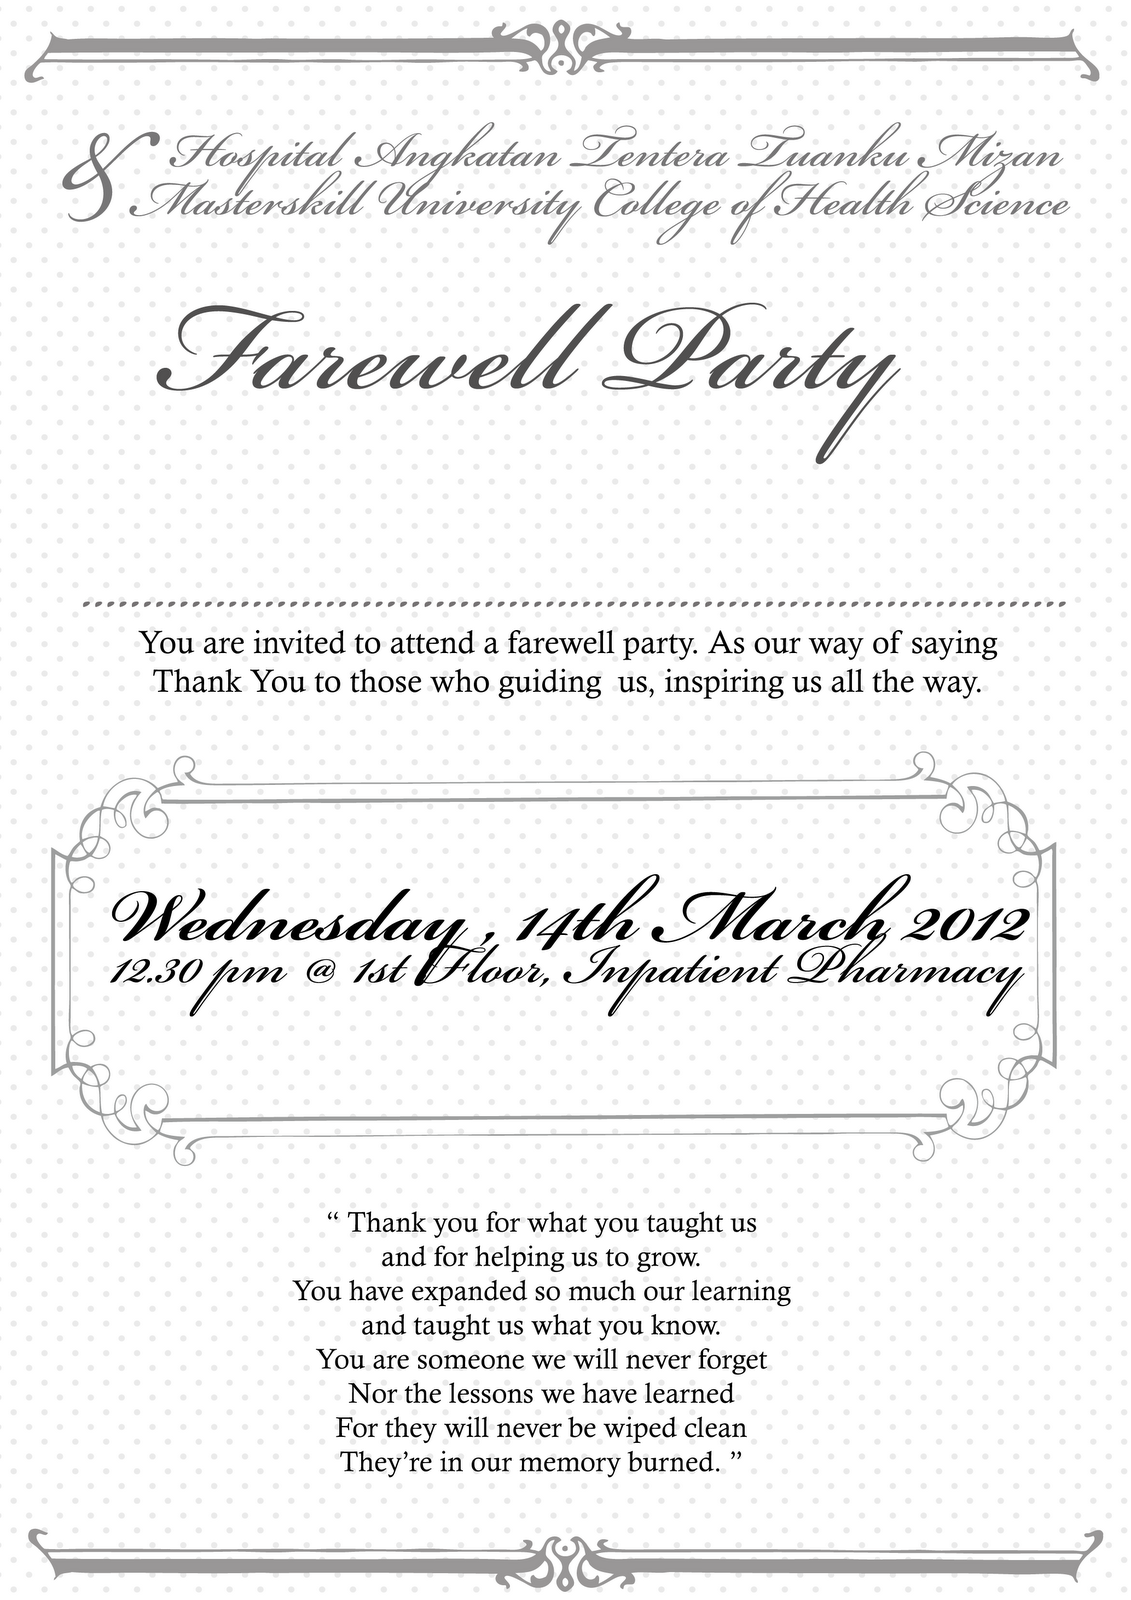 Printable invitation templates going away party free printable invitation templates going away party stopboris Images